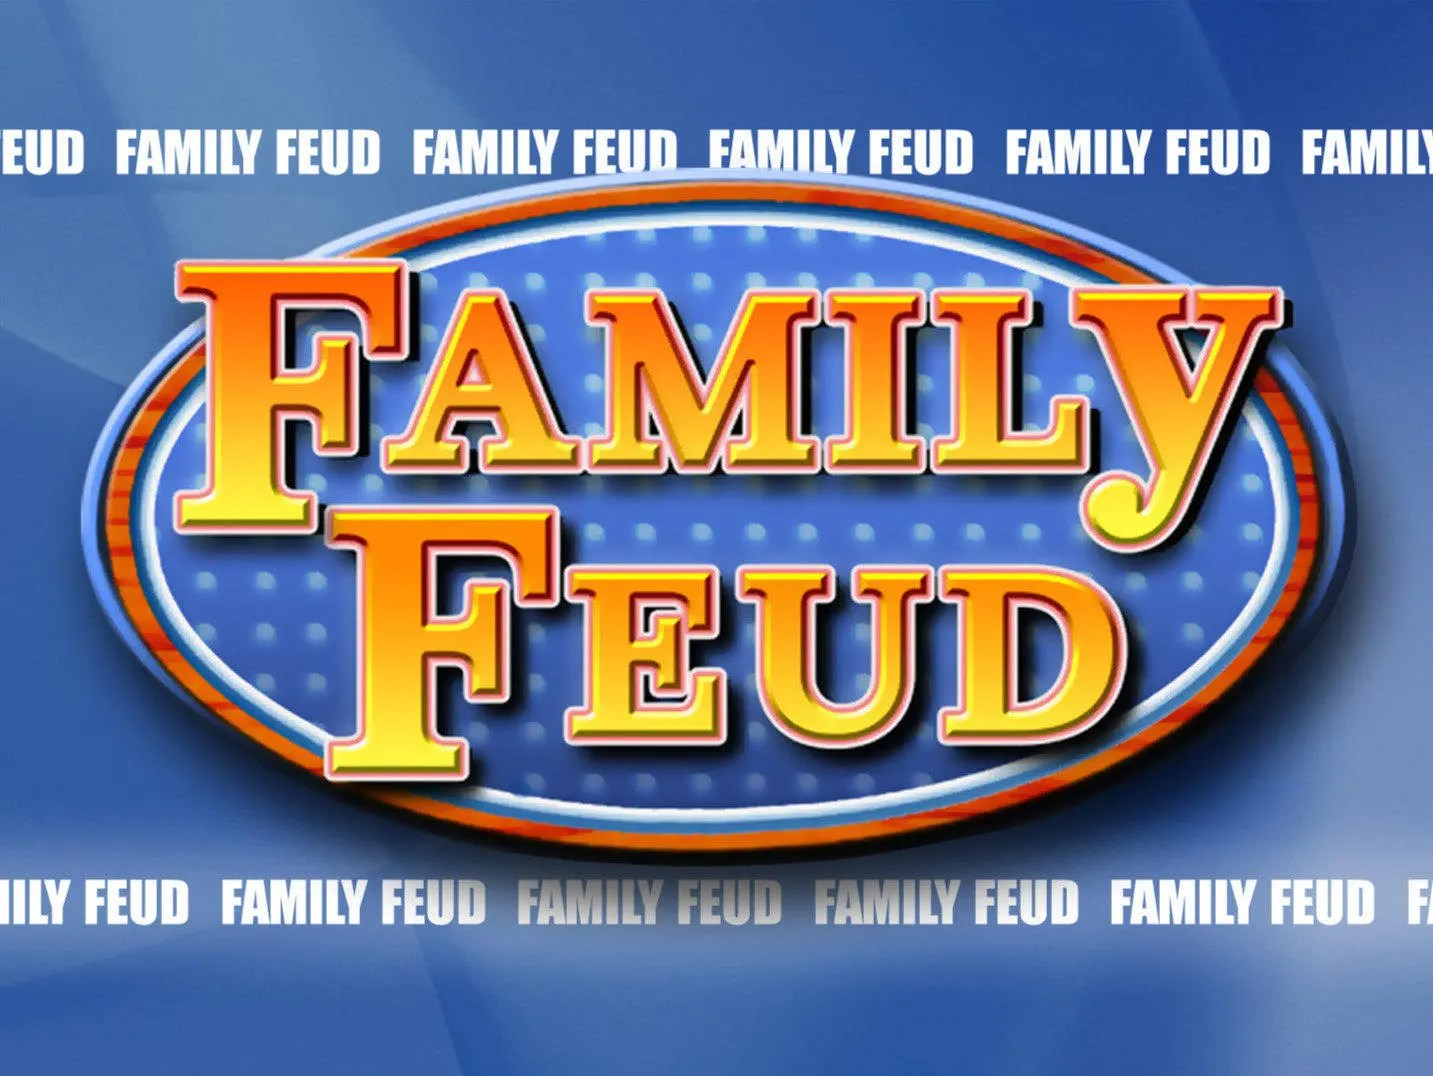 Customizable Family Feud Powerpoint Template - family feud power point template